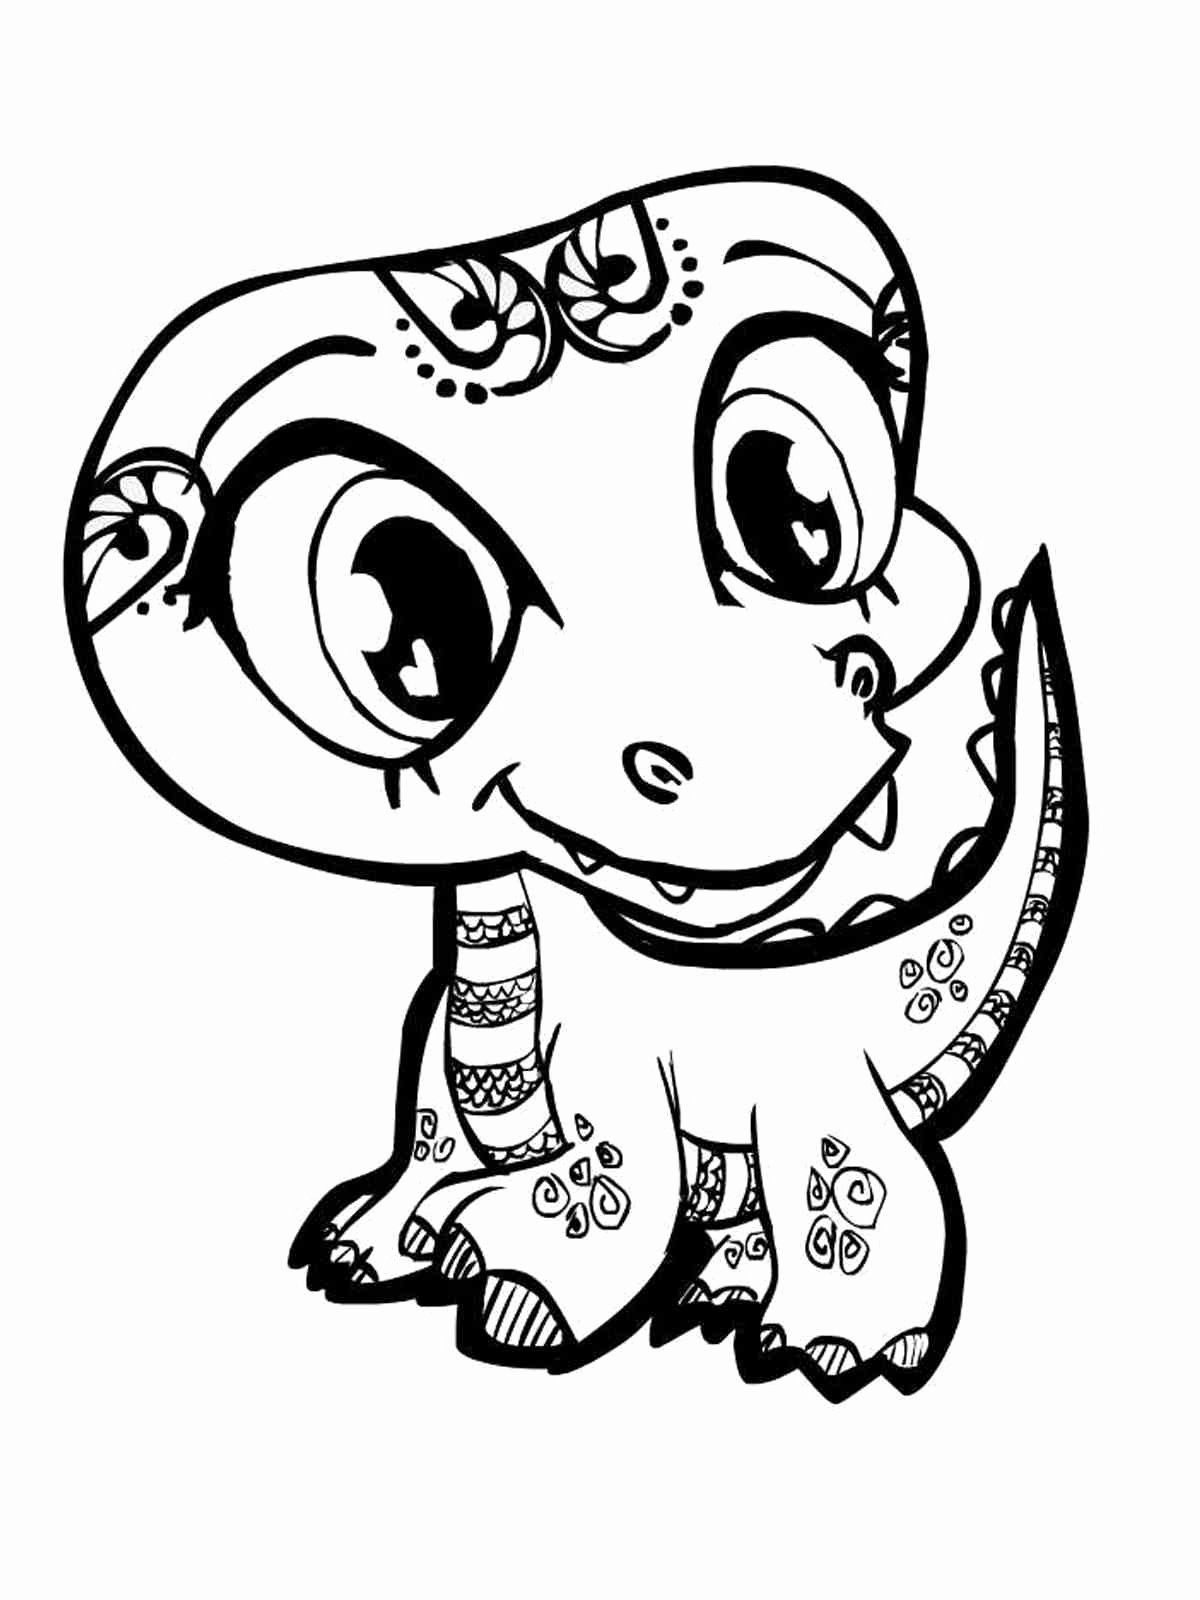 Free Printable Cartoon Coloring Pages New Cute Alligator Coloring Pages Tweakboxxfo In 2020 Dinosaur Coloring Pages Unicorn Coloring Pages Monkey Coloring Pages